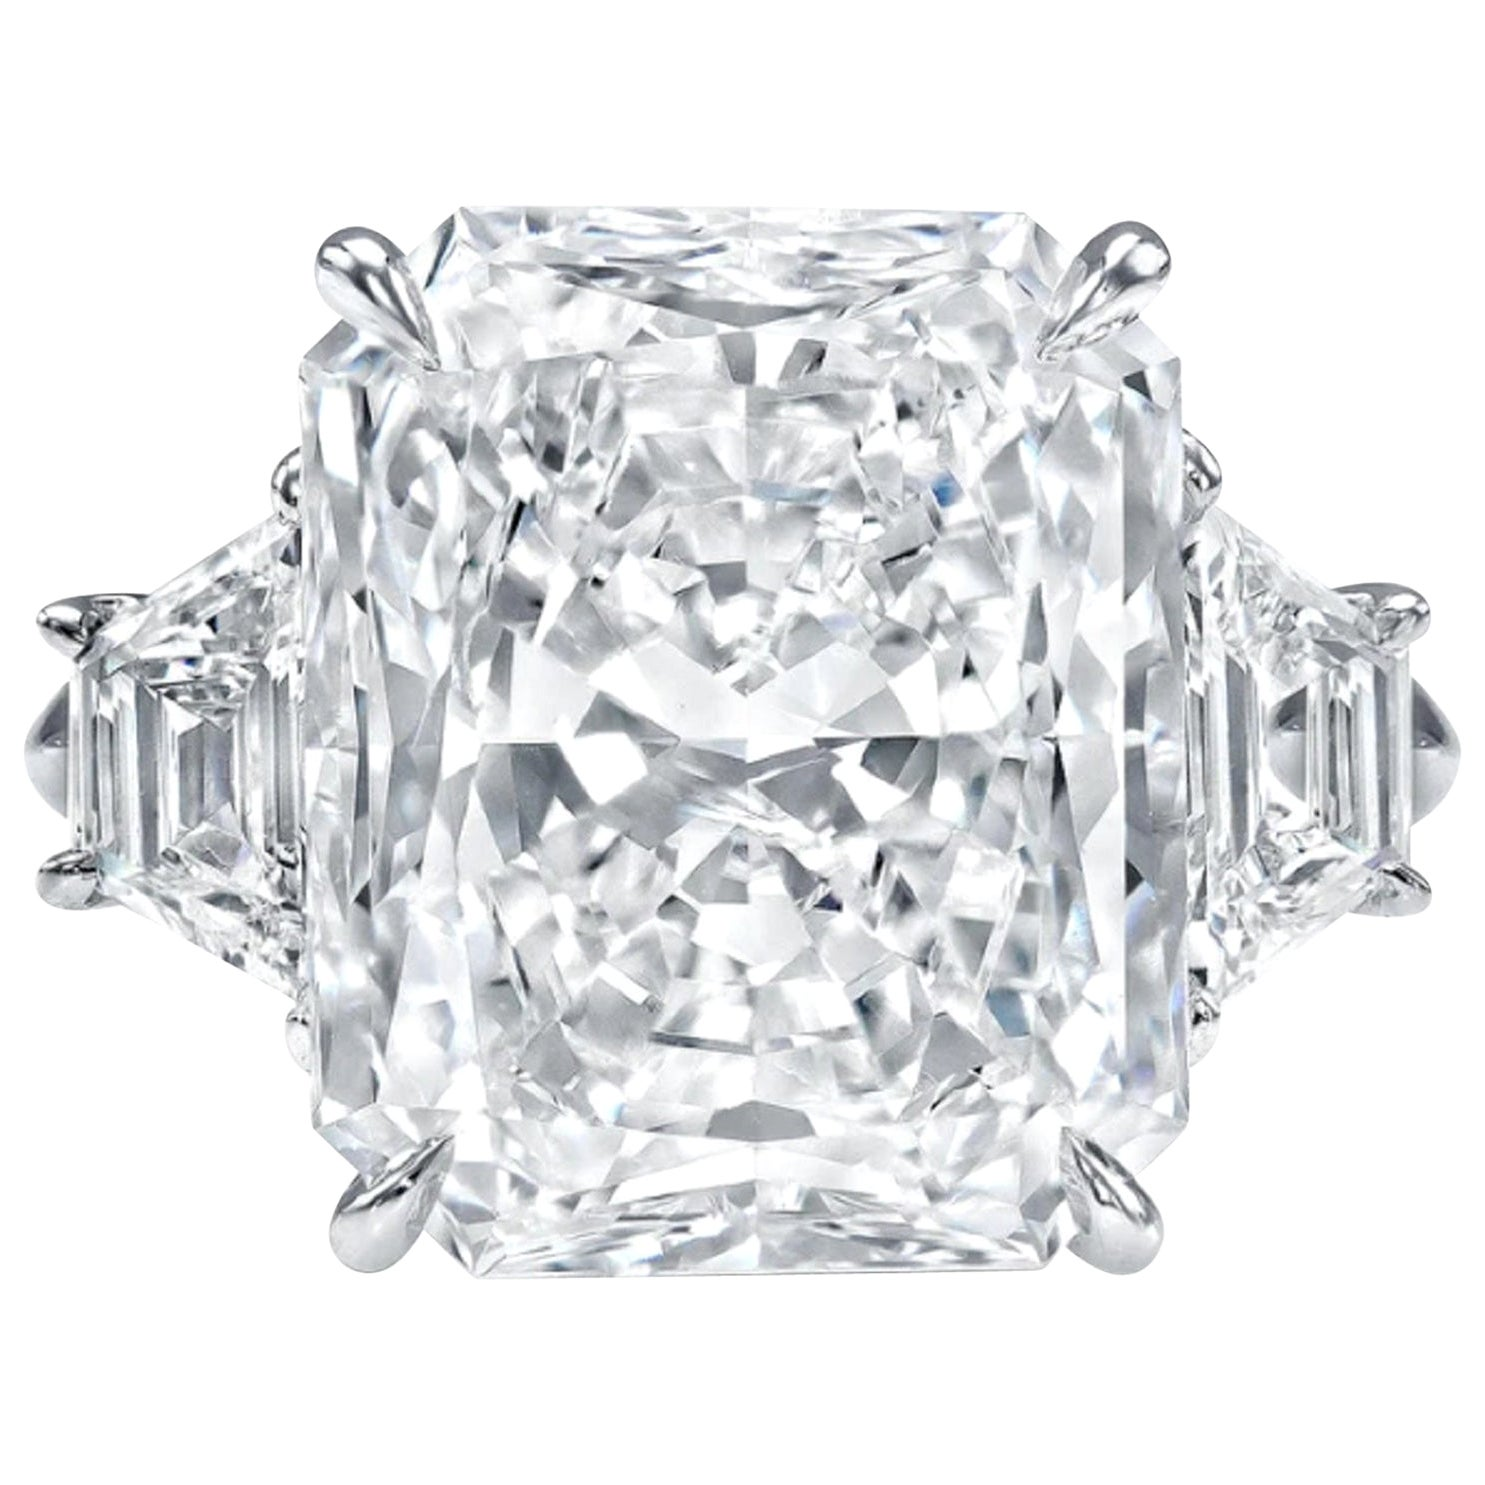 GIA Certified 2.25 Carat Radiant Cut Diamond Ring VS2 Clarity D Color Triple Ex